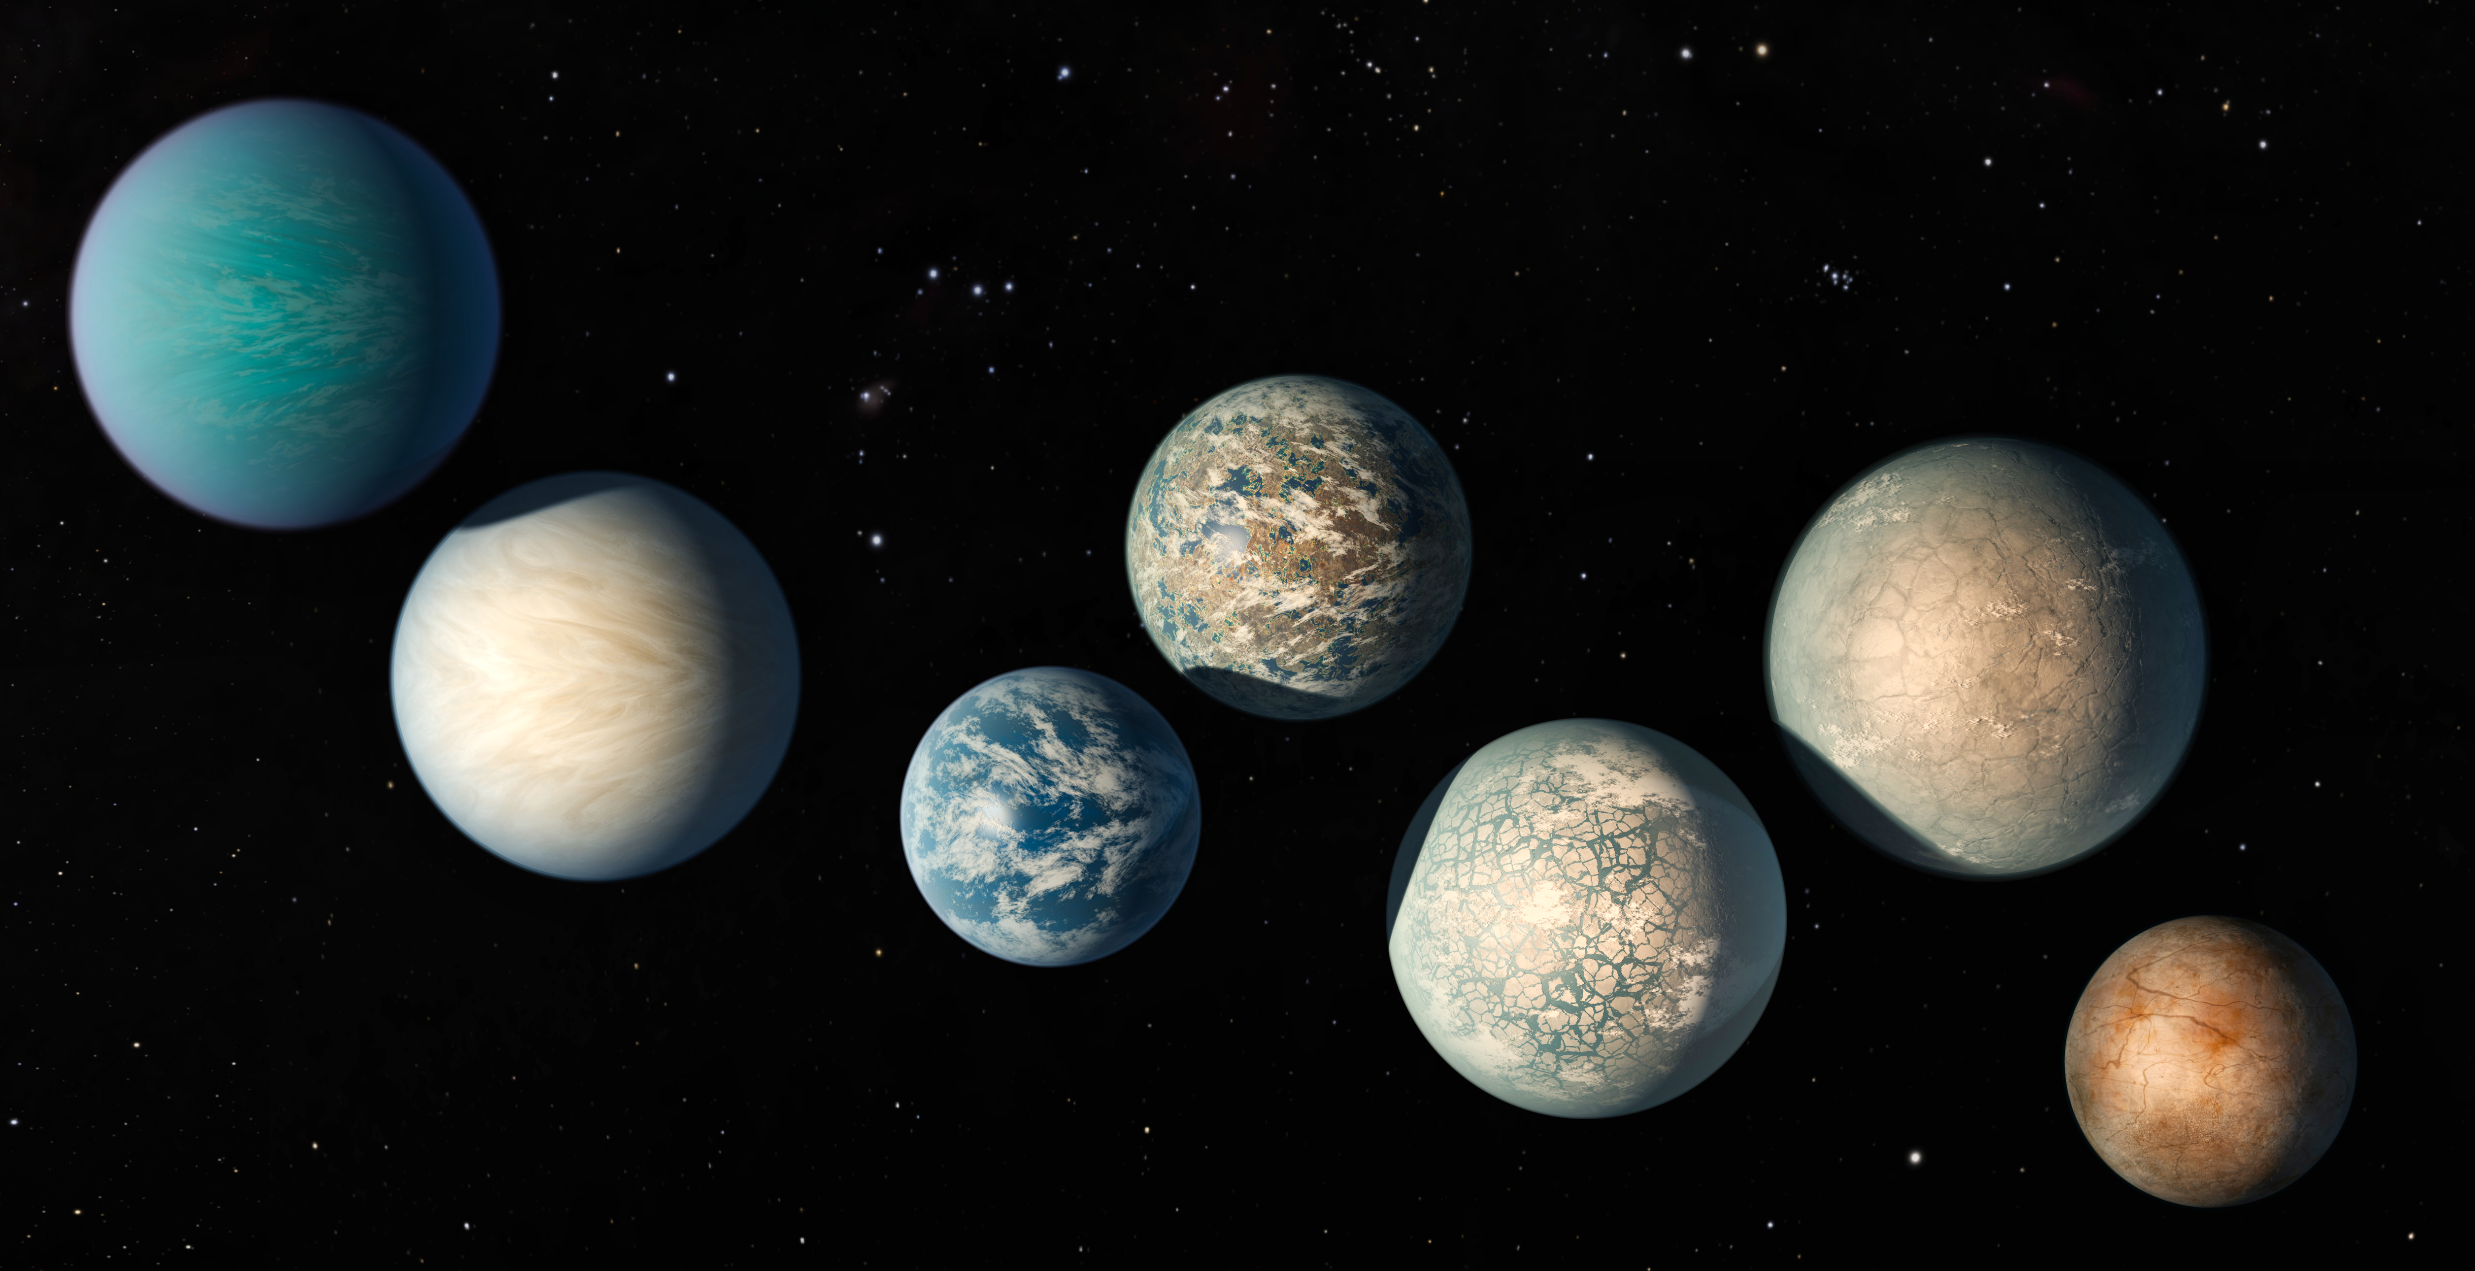 As of today, more than 4000 exoplanets have been discovered. This image shows the amazing set of planets in the TRAPPIST-1 system. Three out of seven of these planets orbit within the habitable zone of their host star.- Image Credit:  NASA/JPL-Caltech  -  HDR tune by Universal-Sci